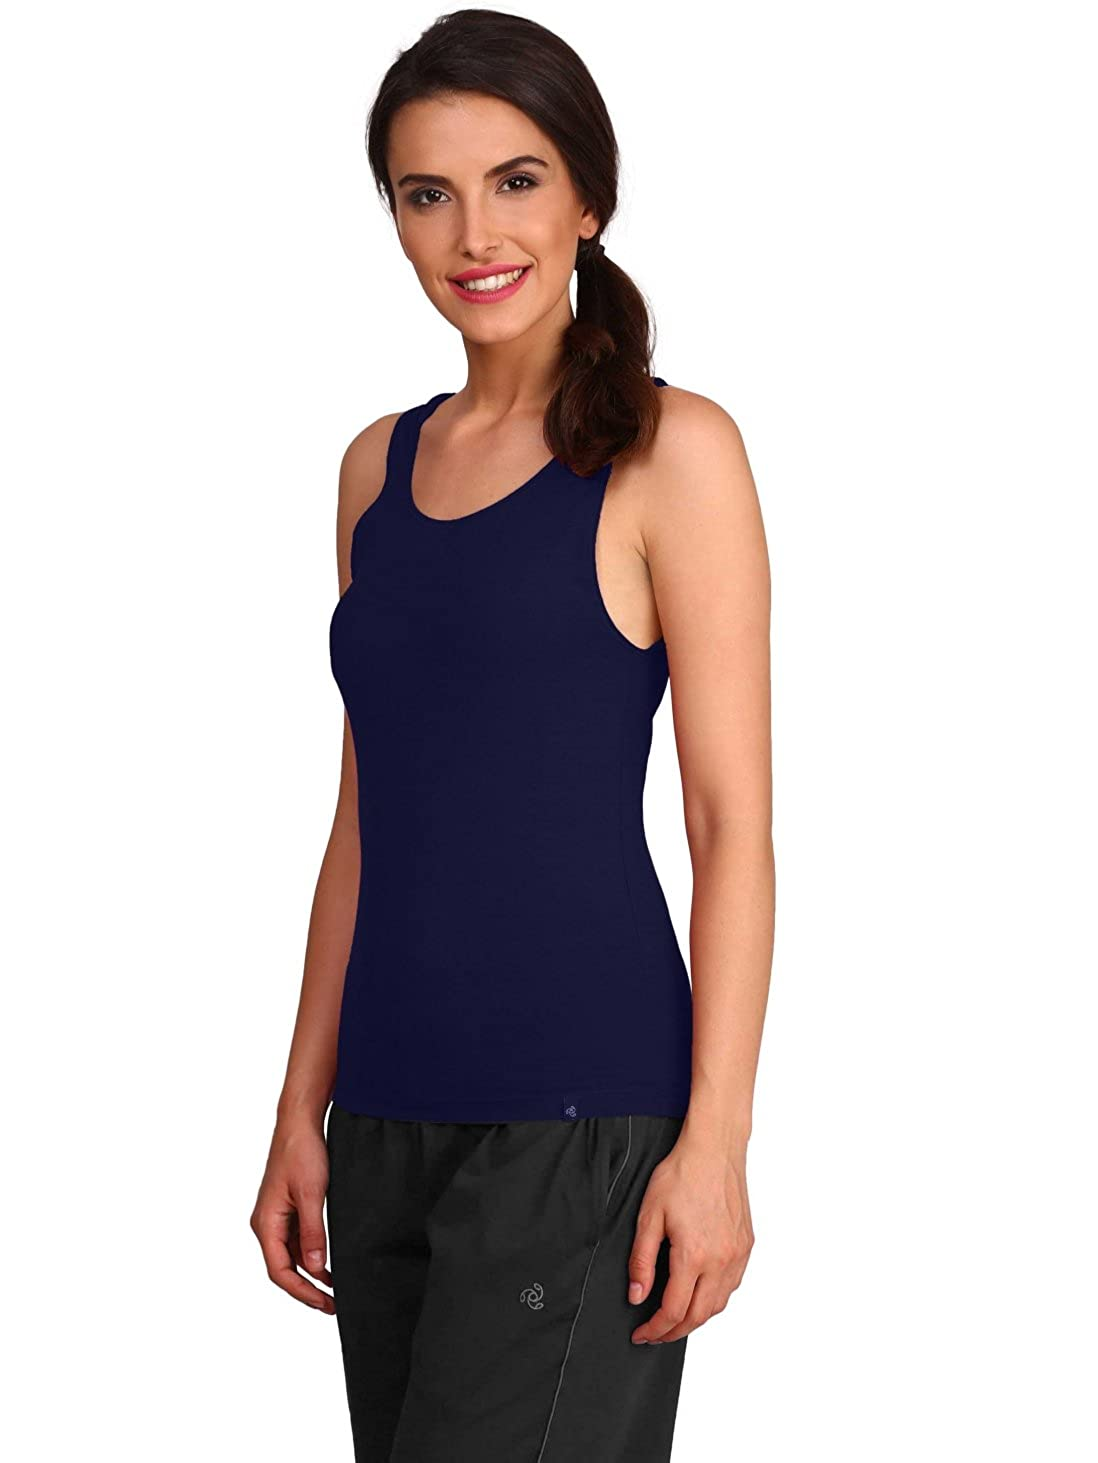 8edf799f84d224 Jockey Women s Cotton Tank Top (1335-0110-IMPBL)  Amazon.in  Clothing    Accessories